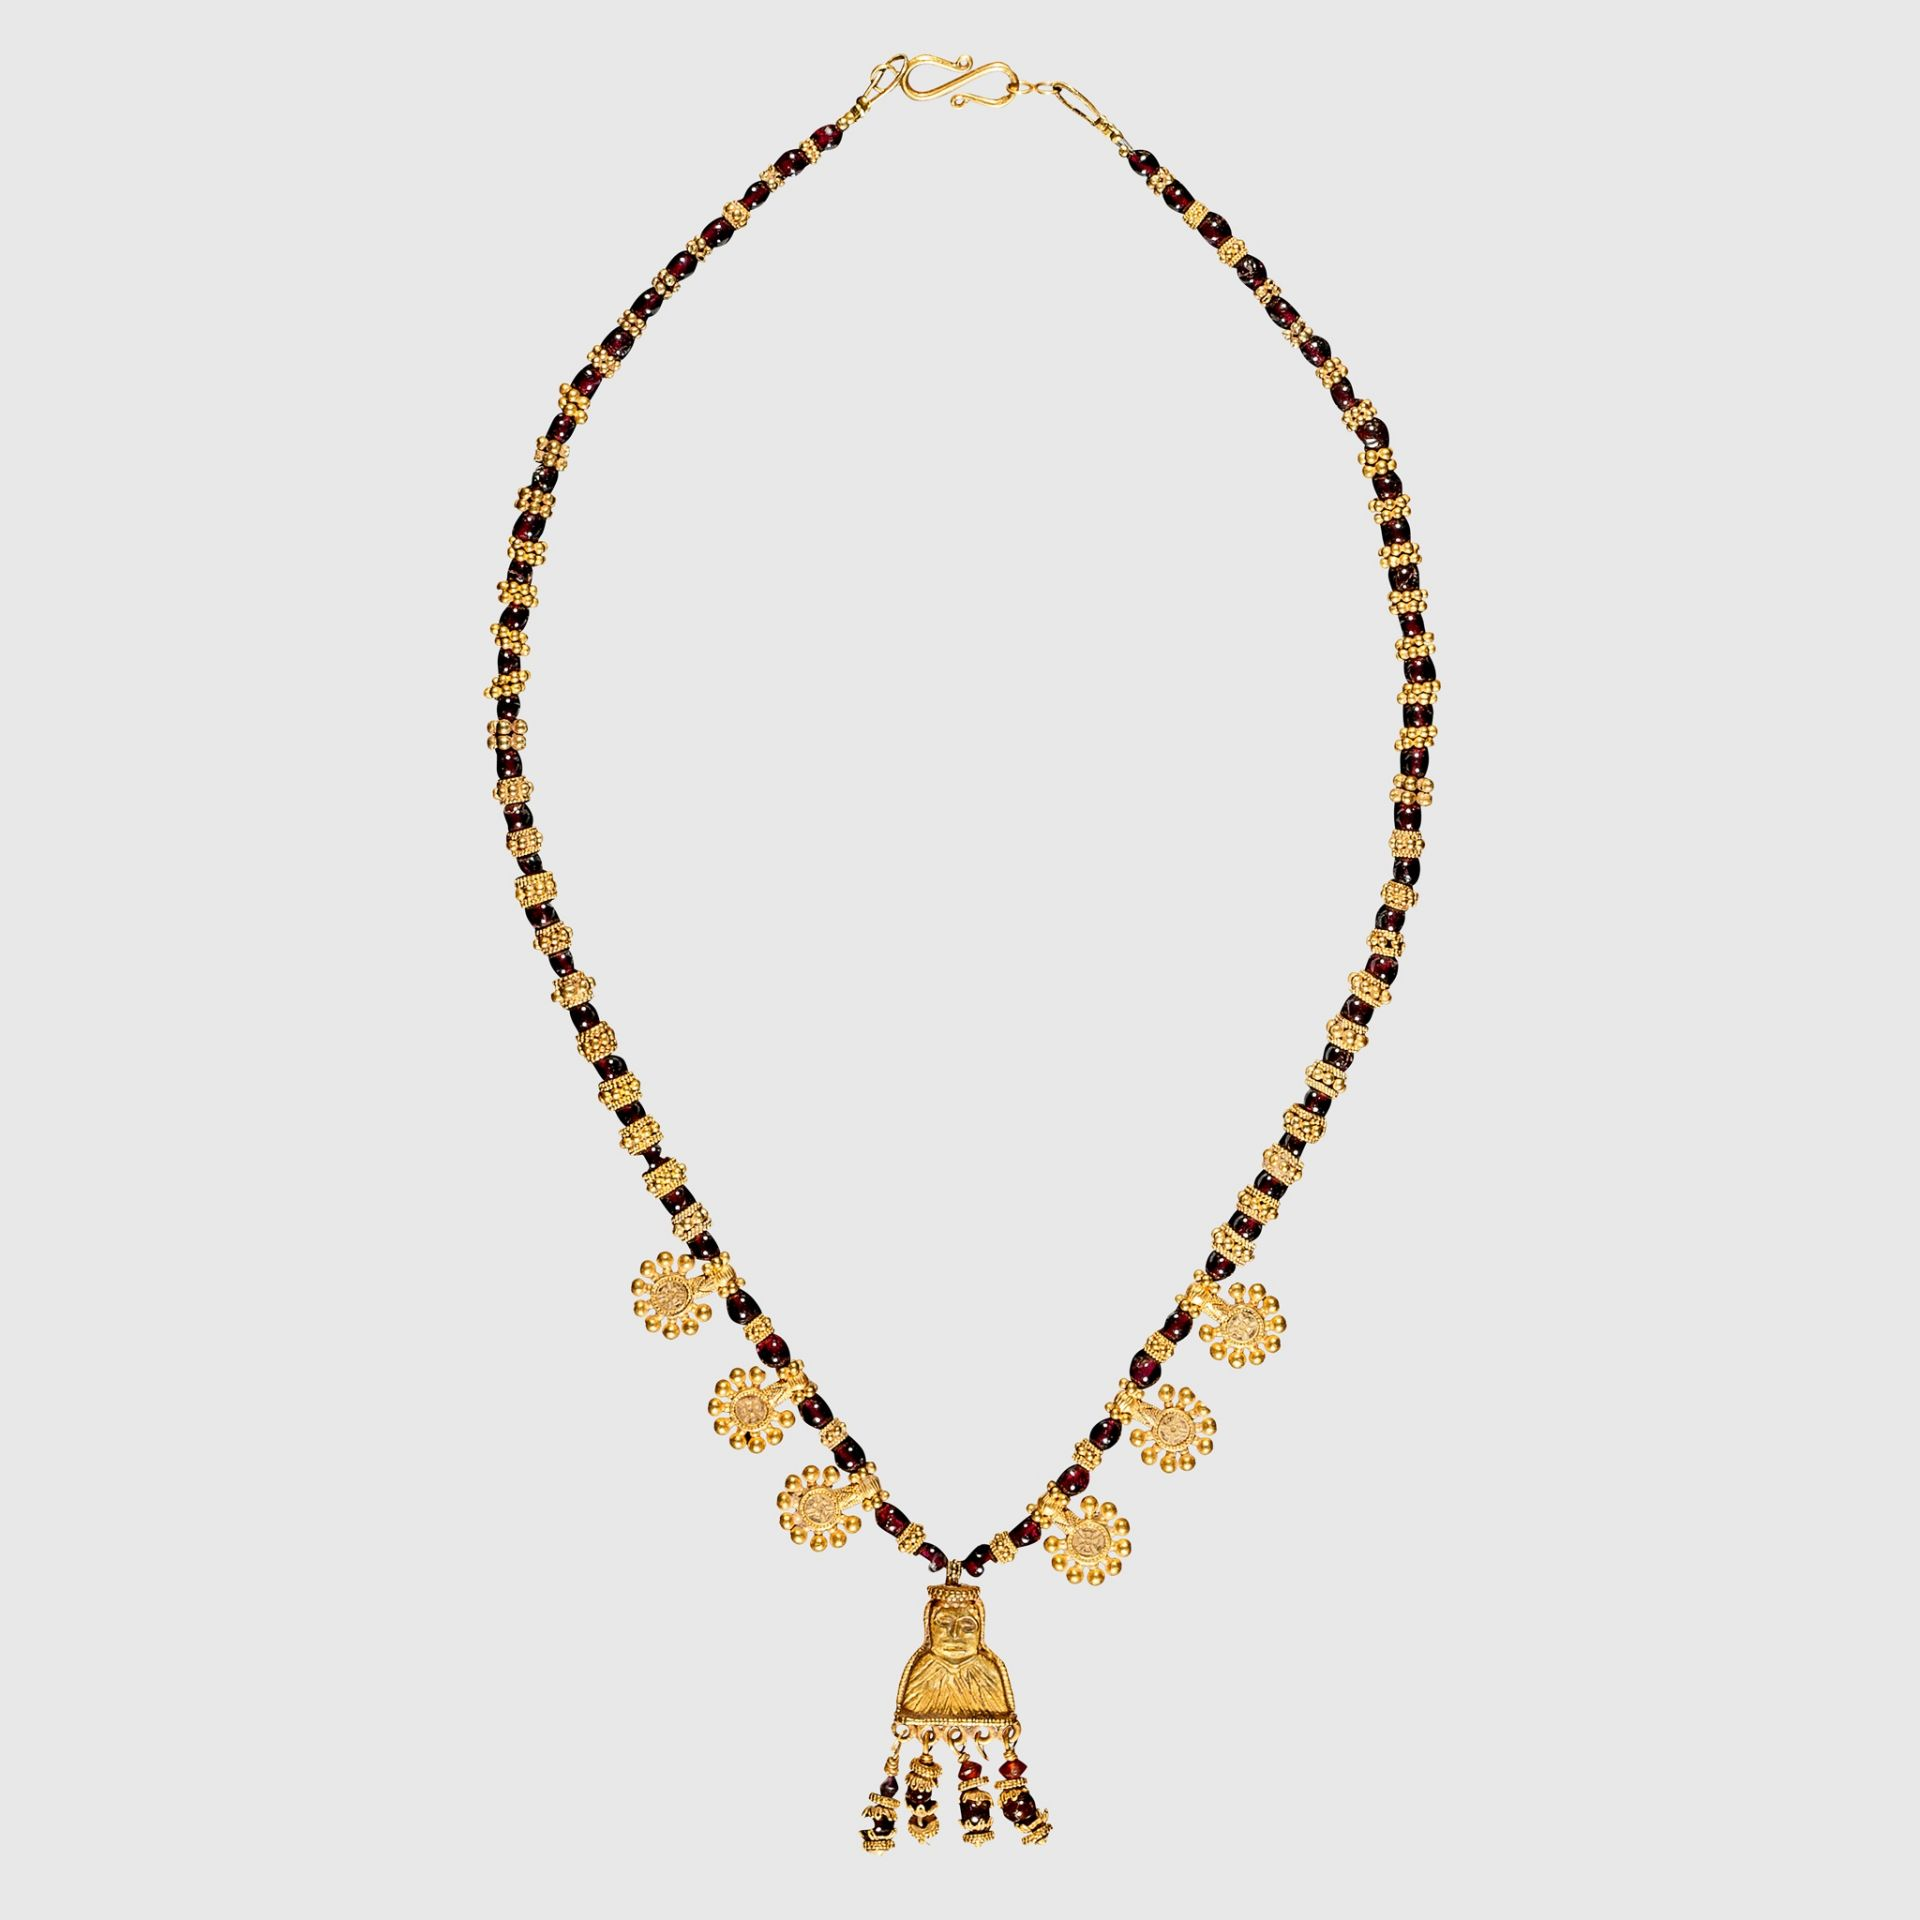 ANCIENT ARABIAN GOLD NECKLACE WITH FEMALE FIGURE PENDANT, LIKELY SABEAN SOUTHERN ARABIA, C. 5TH -